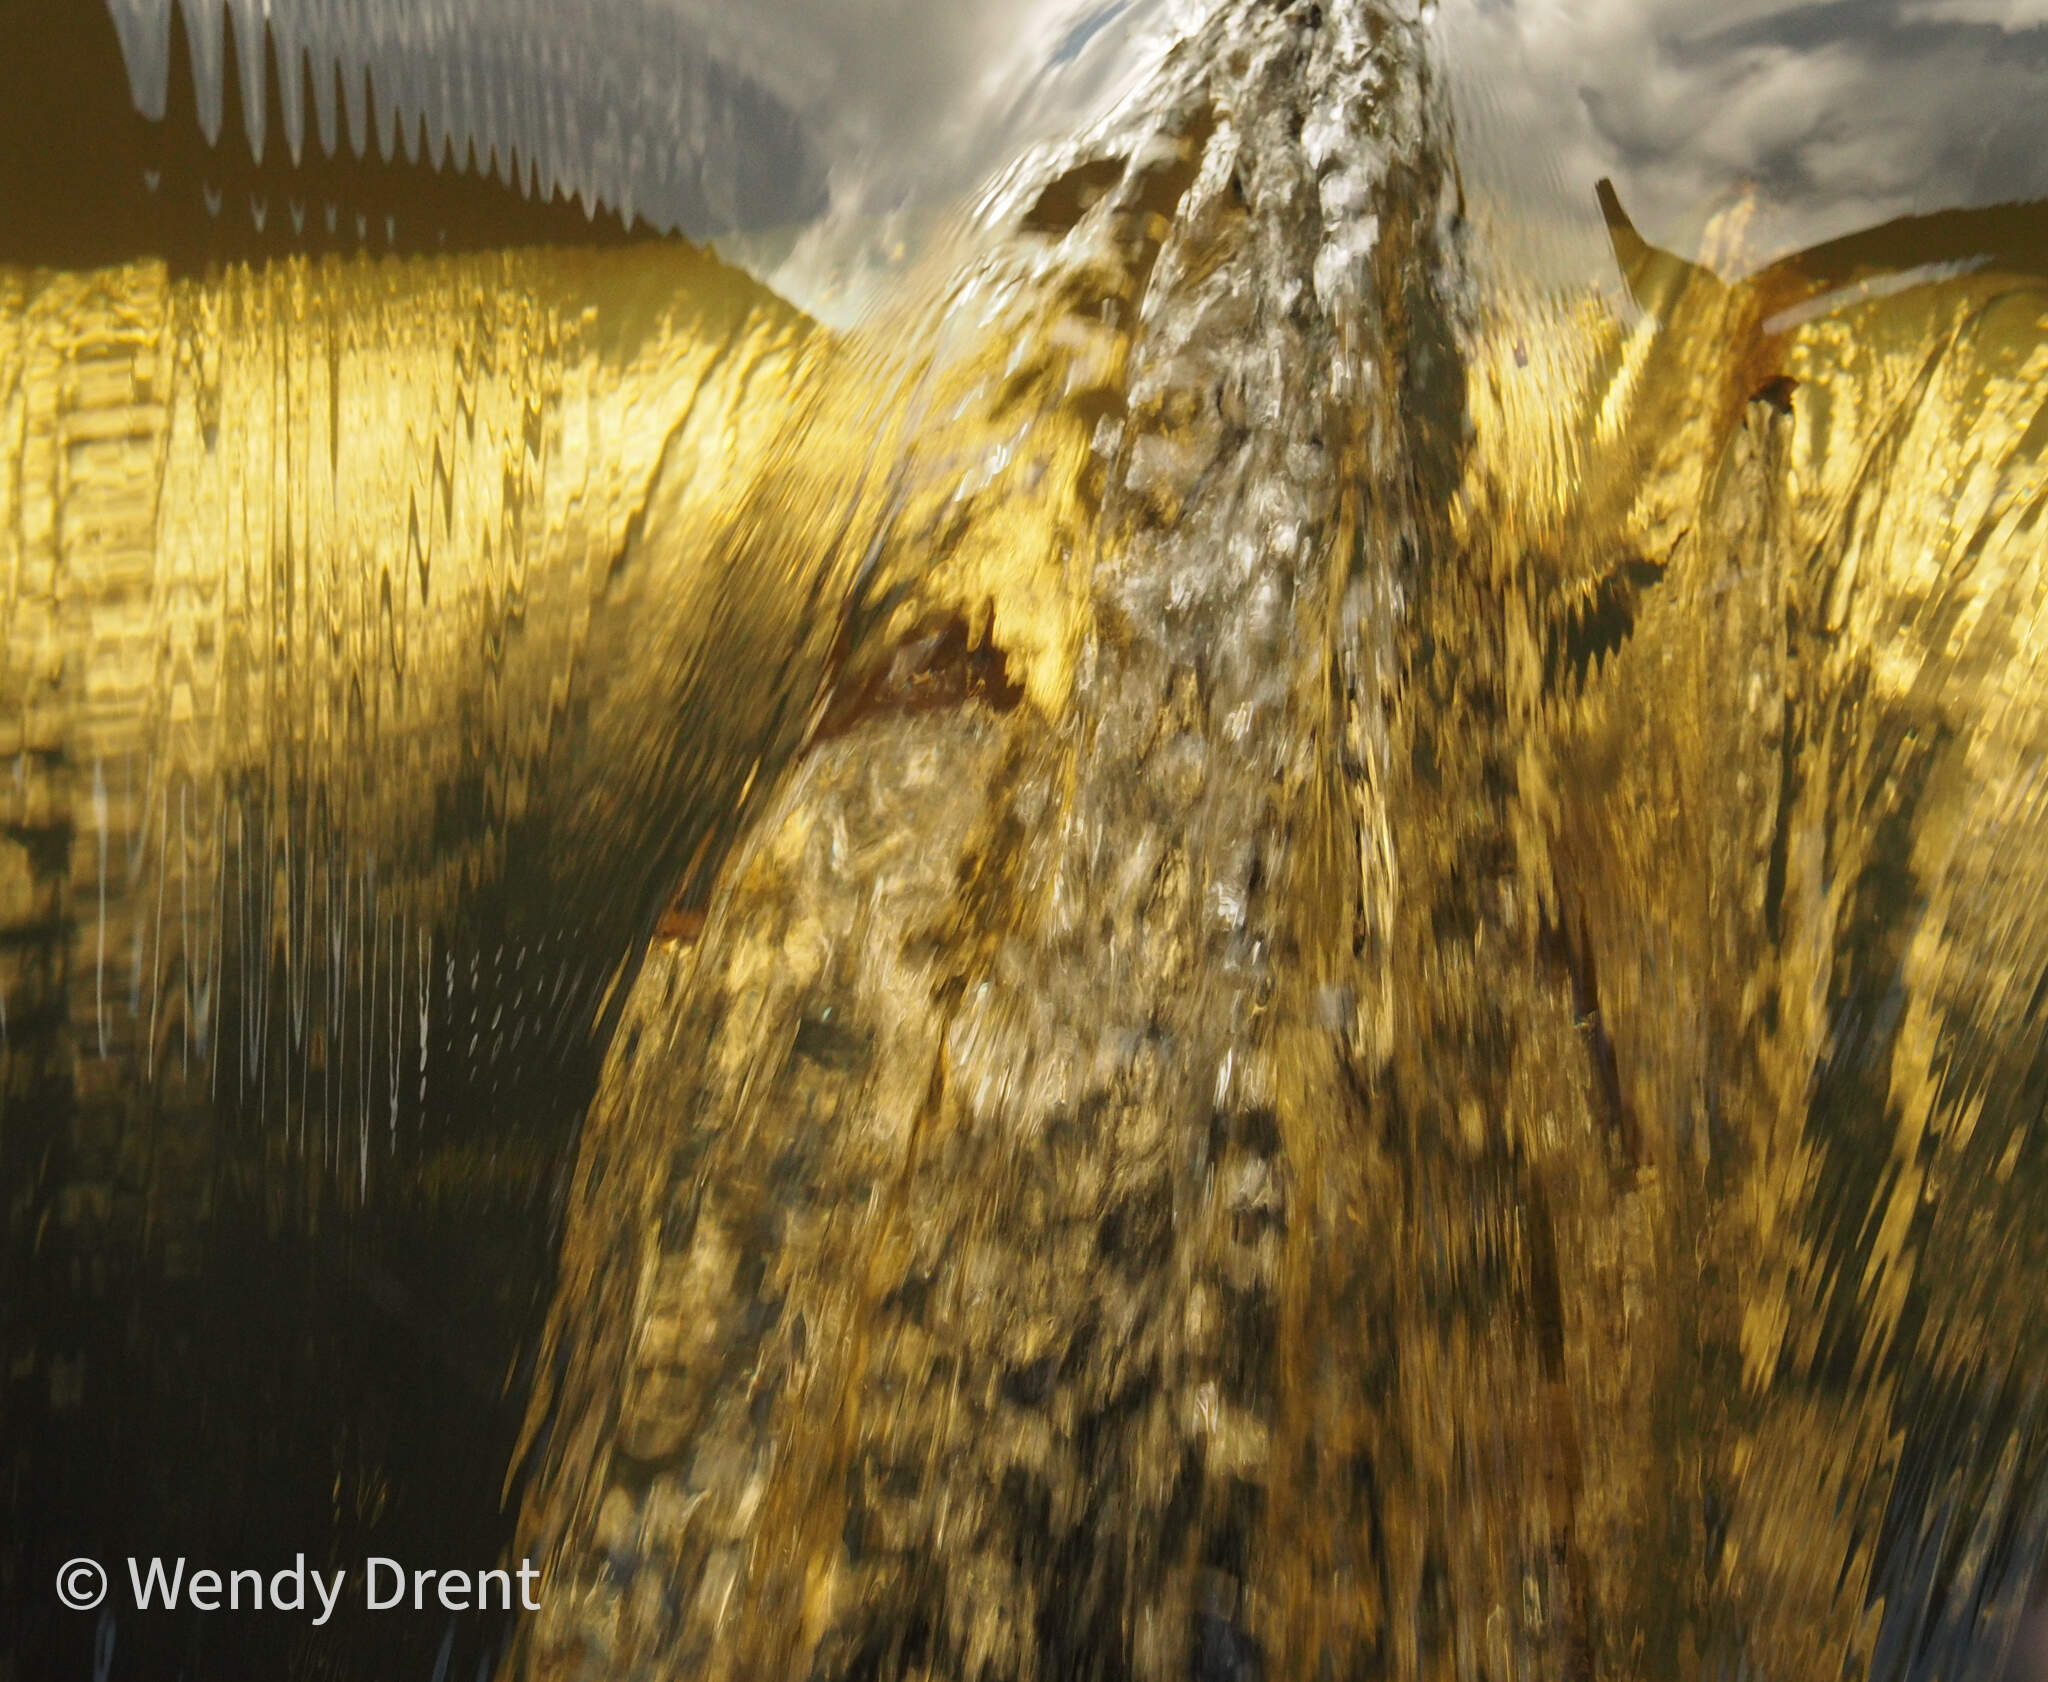 golden water, watermill, abstract, wendy drent,leudal, leumolen, naturephotography, limburg, netherlands